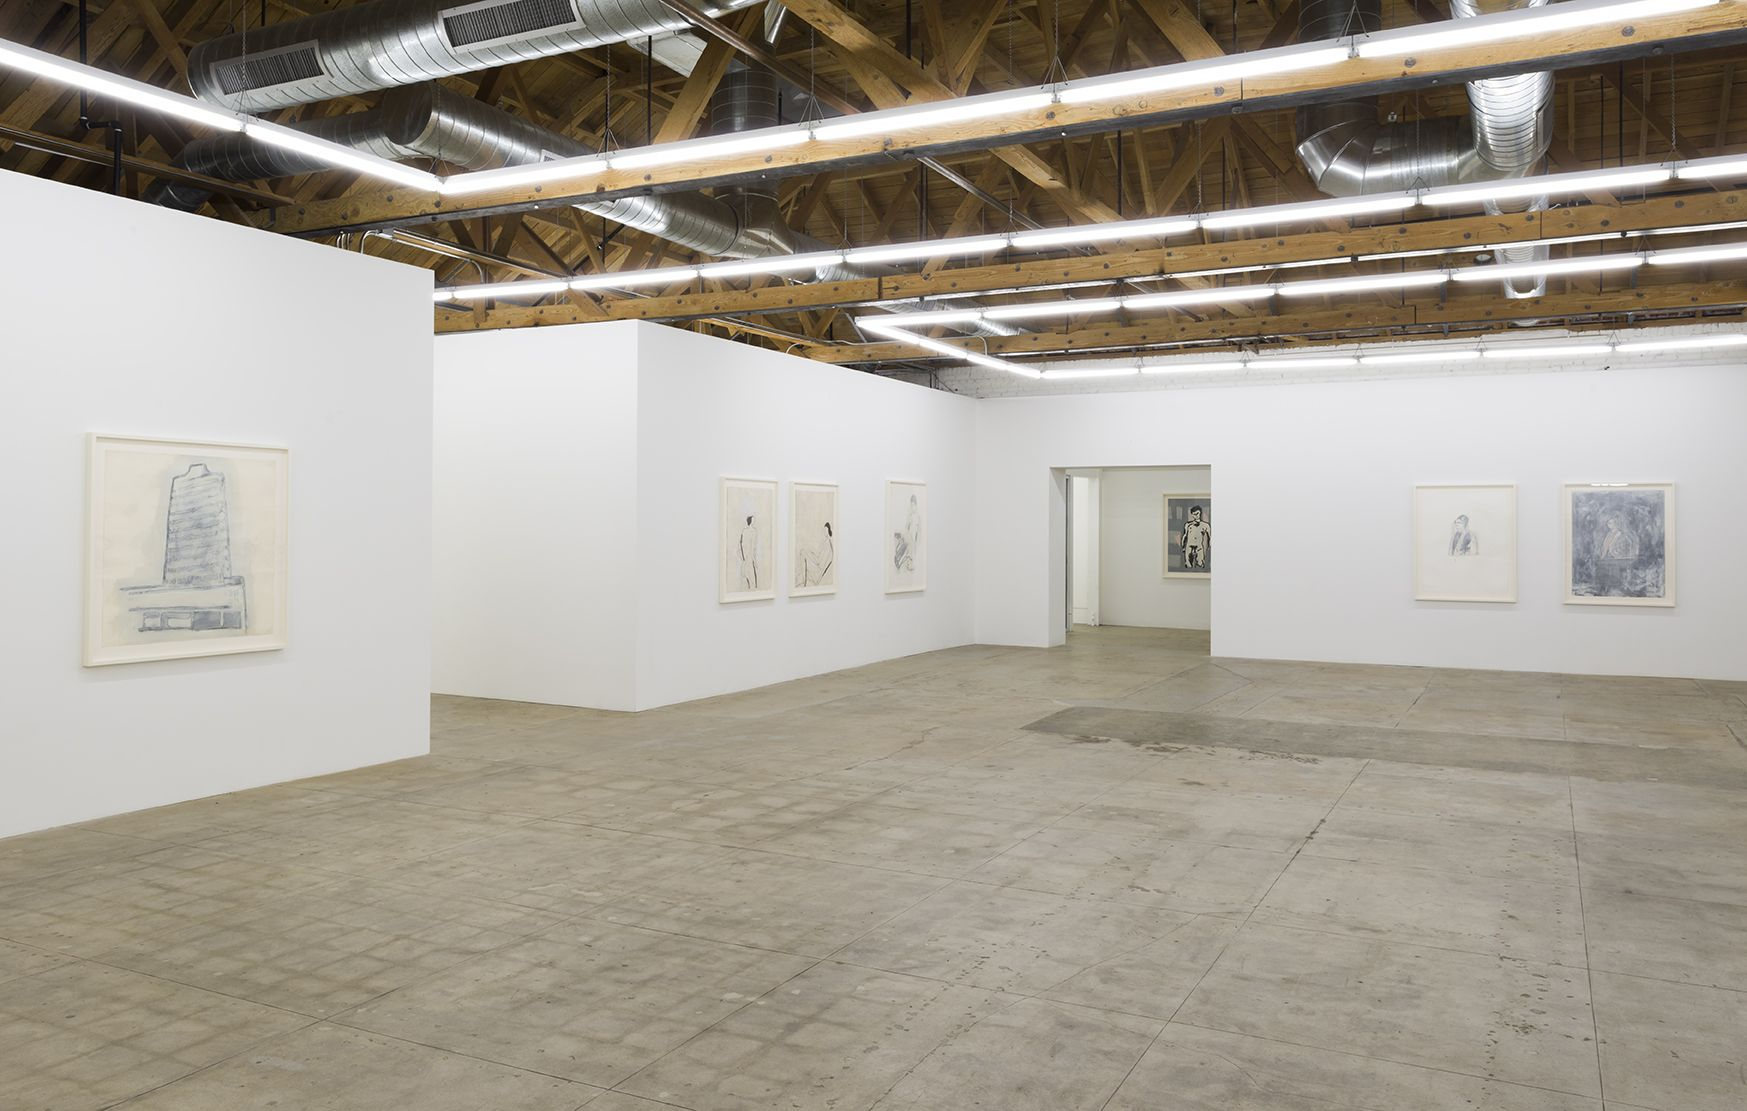 Installation of Donald Baechler Early Work 1980 - 1984